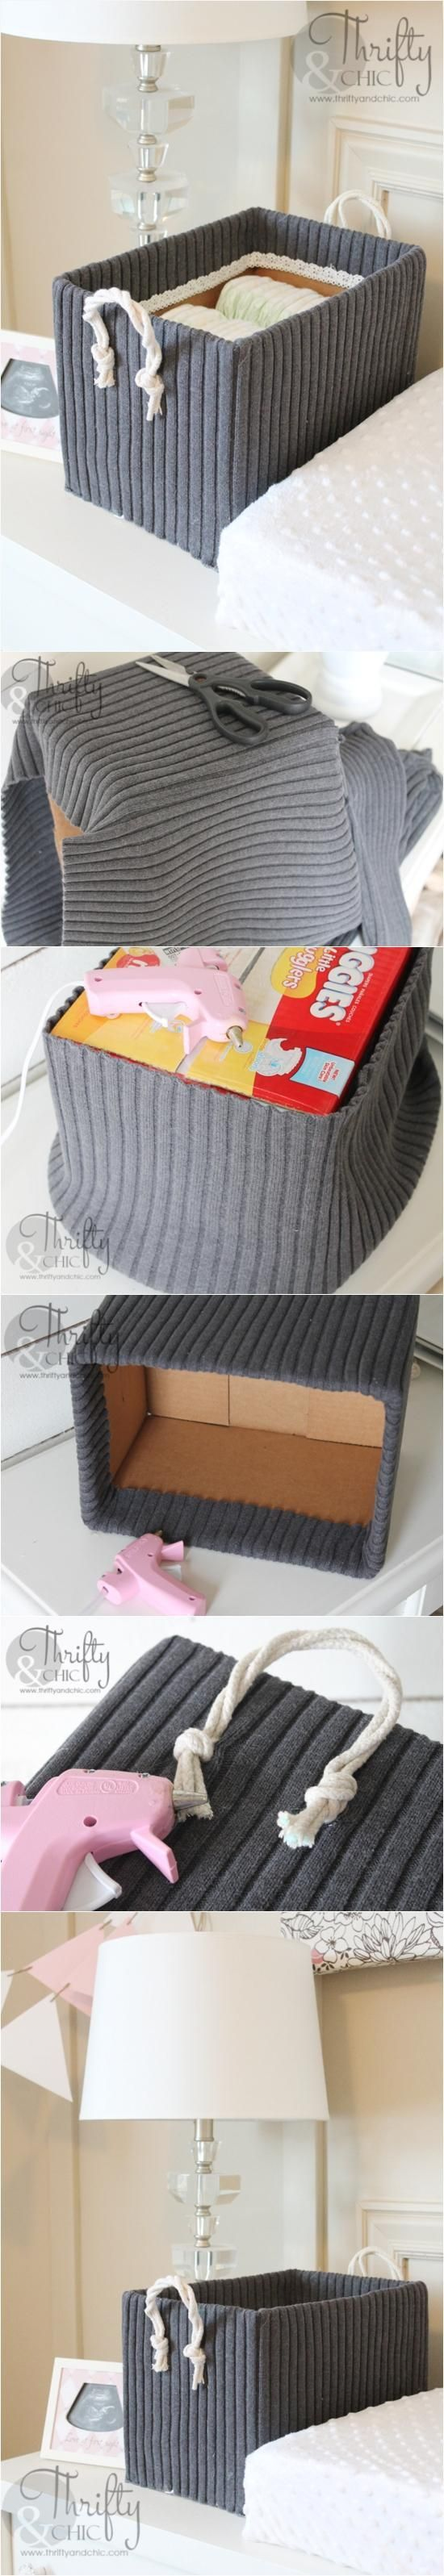 Cute storage boxes from old boxes and sweaters diy crafts club